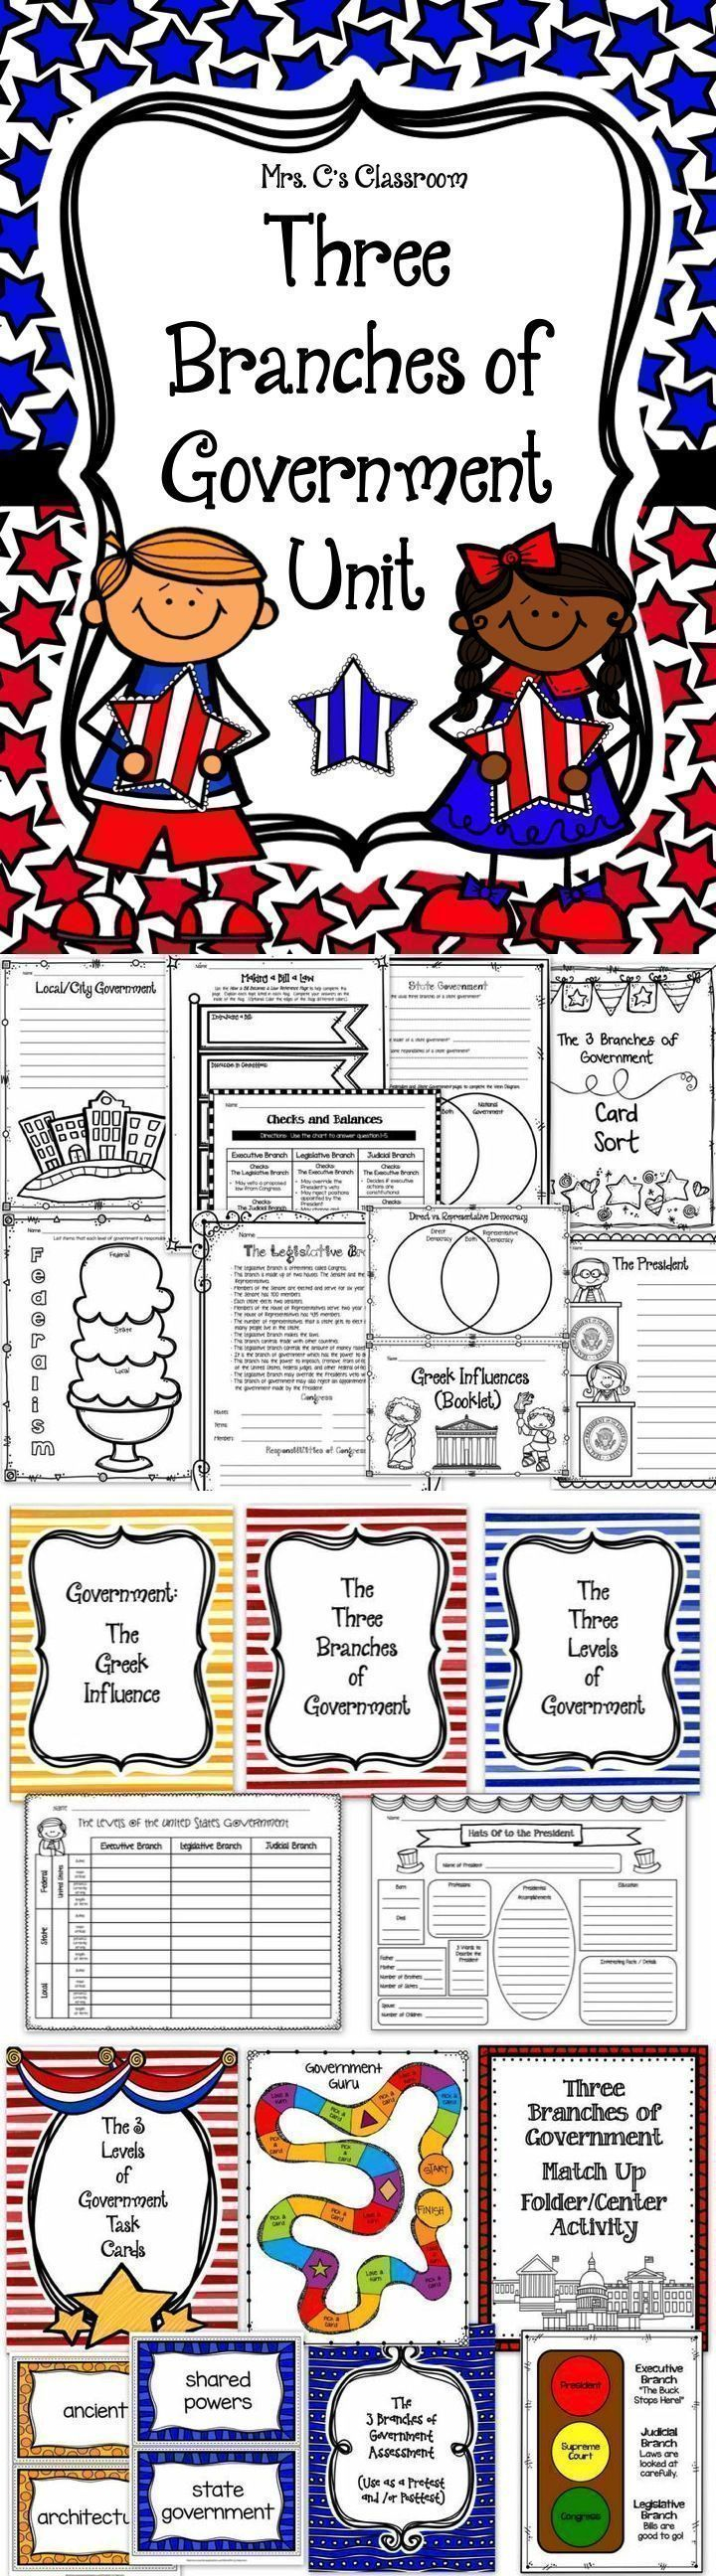 This Three Branches of Government is a large unit that includes a section of the Greek influence on United States government, a large section on the three branches of government (executive, legislative, and judicial) and the levels of government (national, state, and local).   There are activities, worksheets, graphic organizers, vocabulary cards, and more....